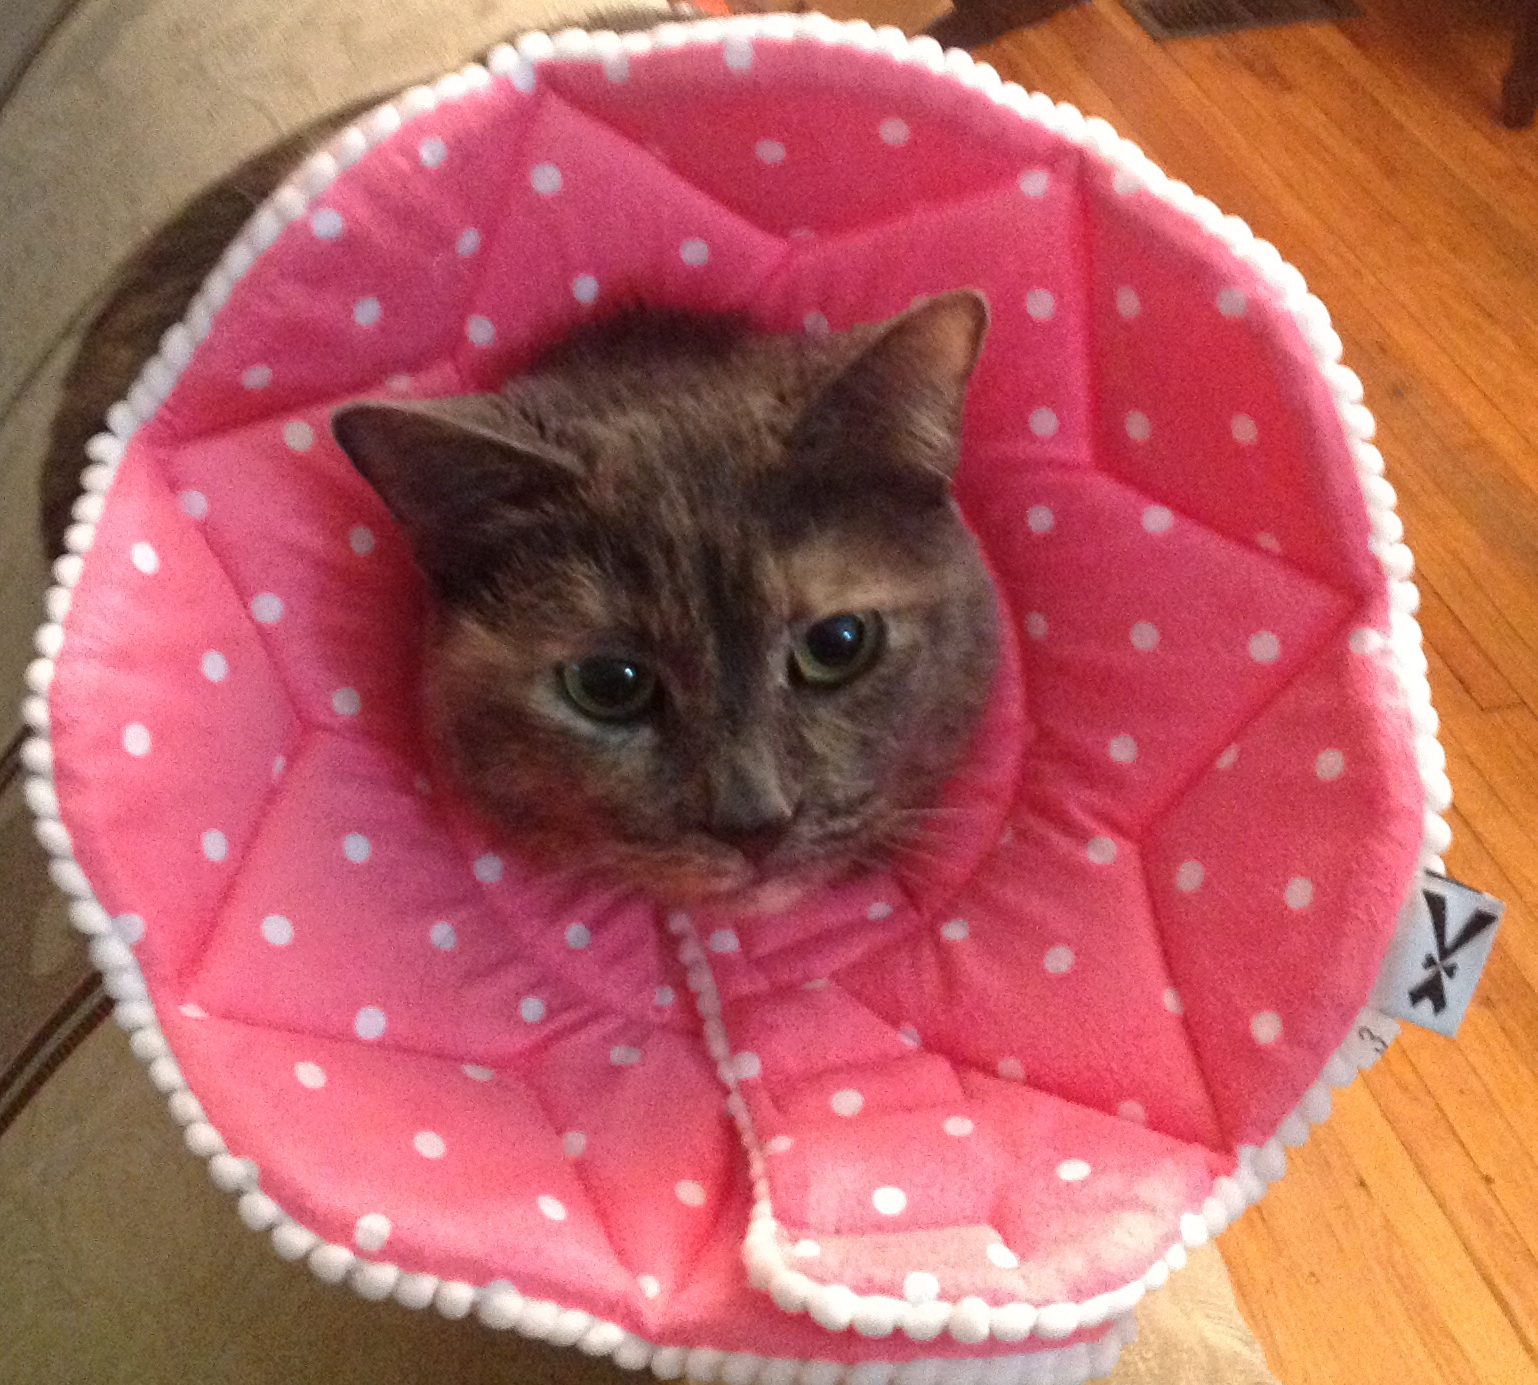 Must be very comfortable to wear, because my female cat loves this cone